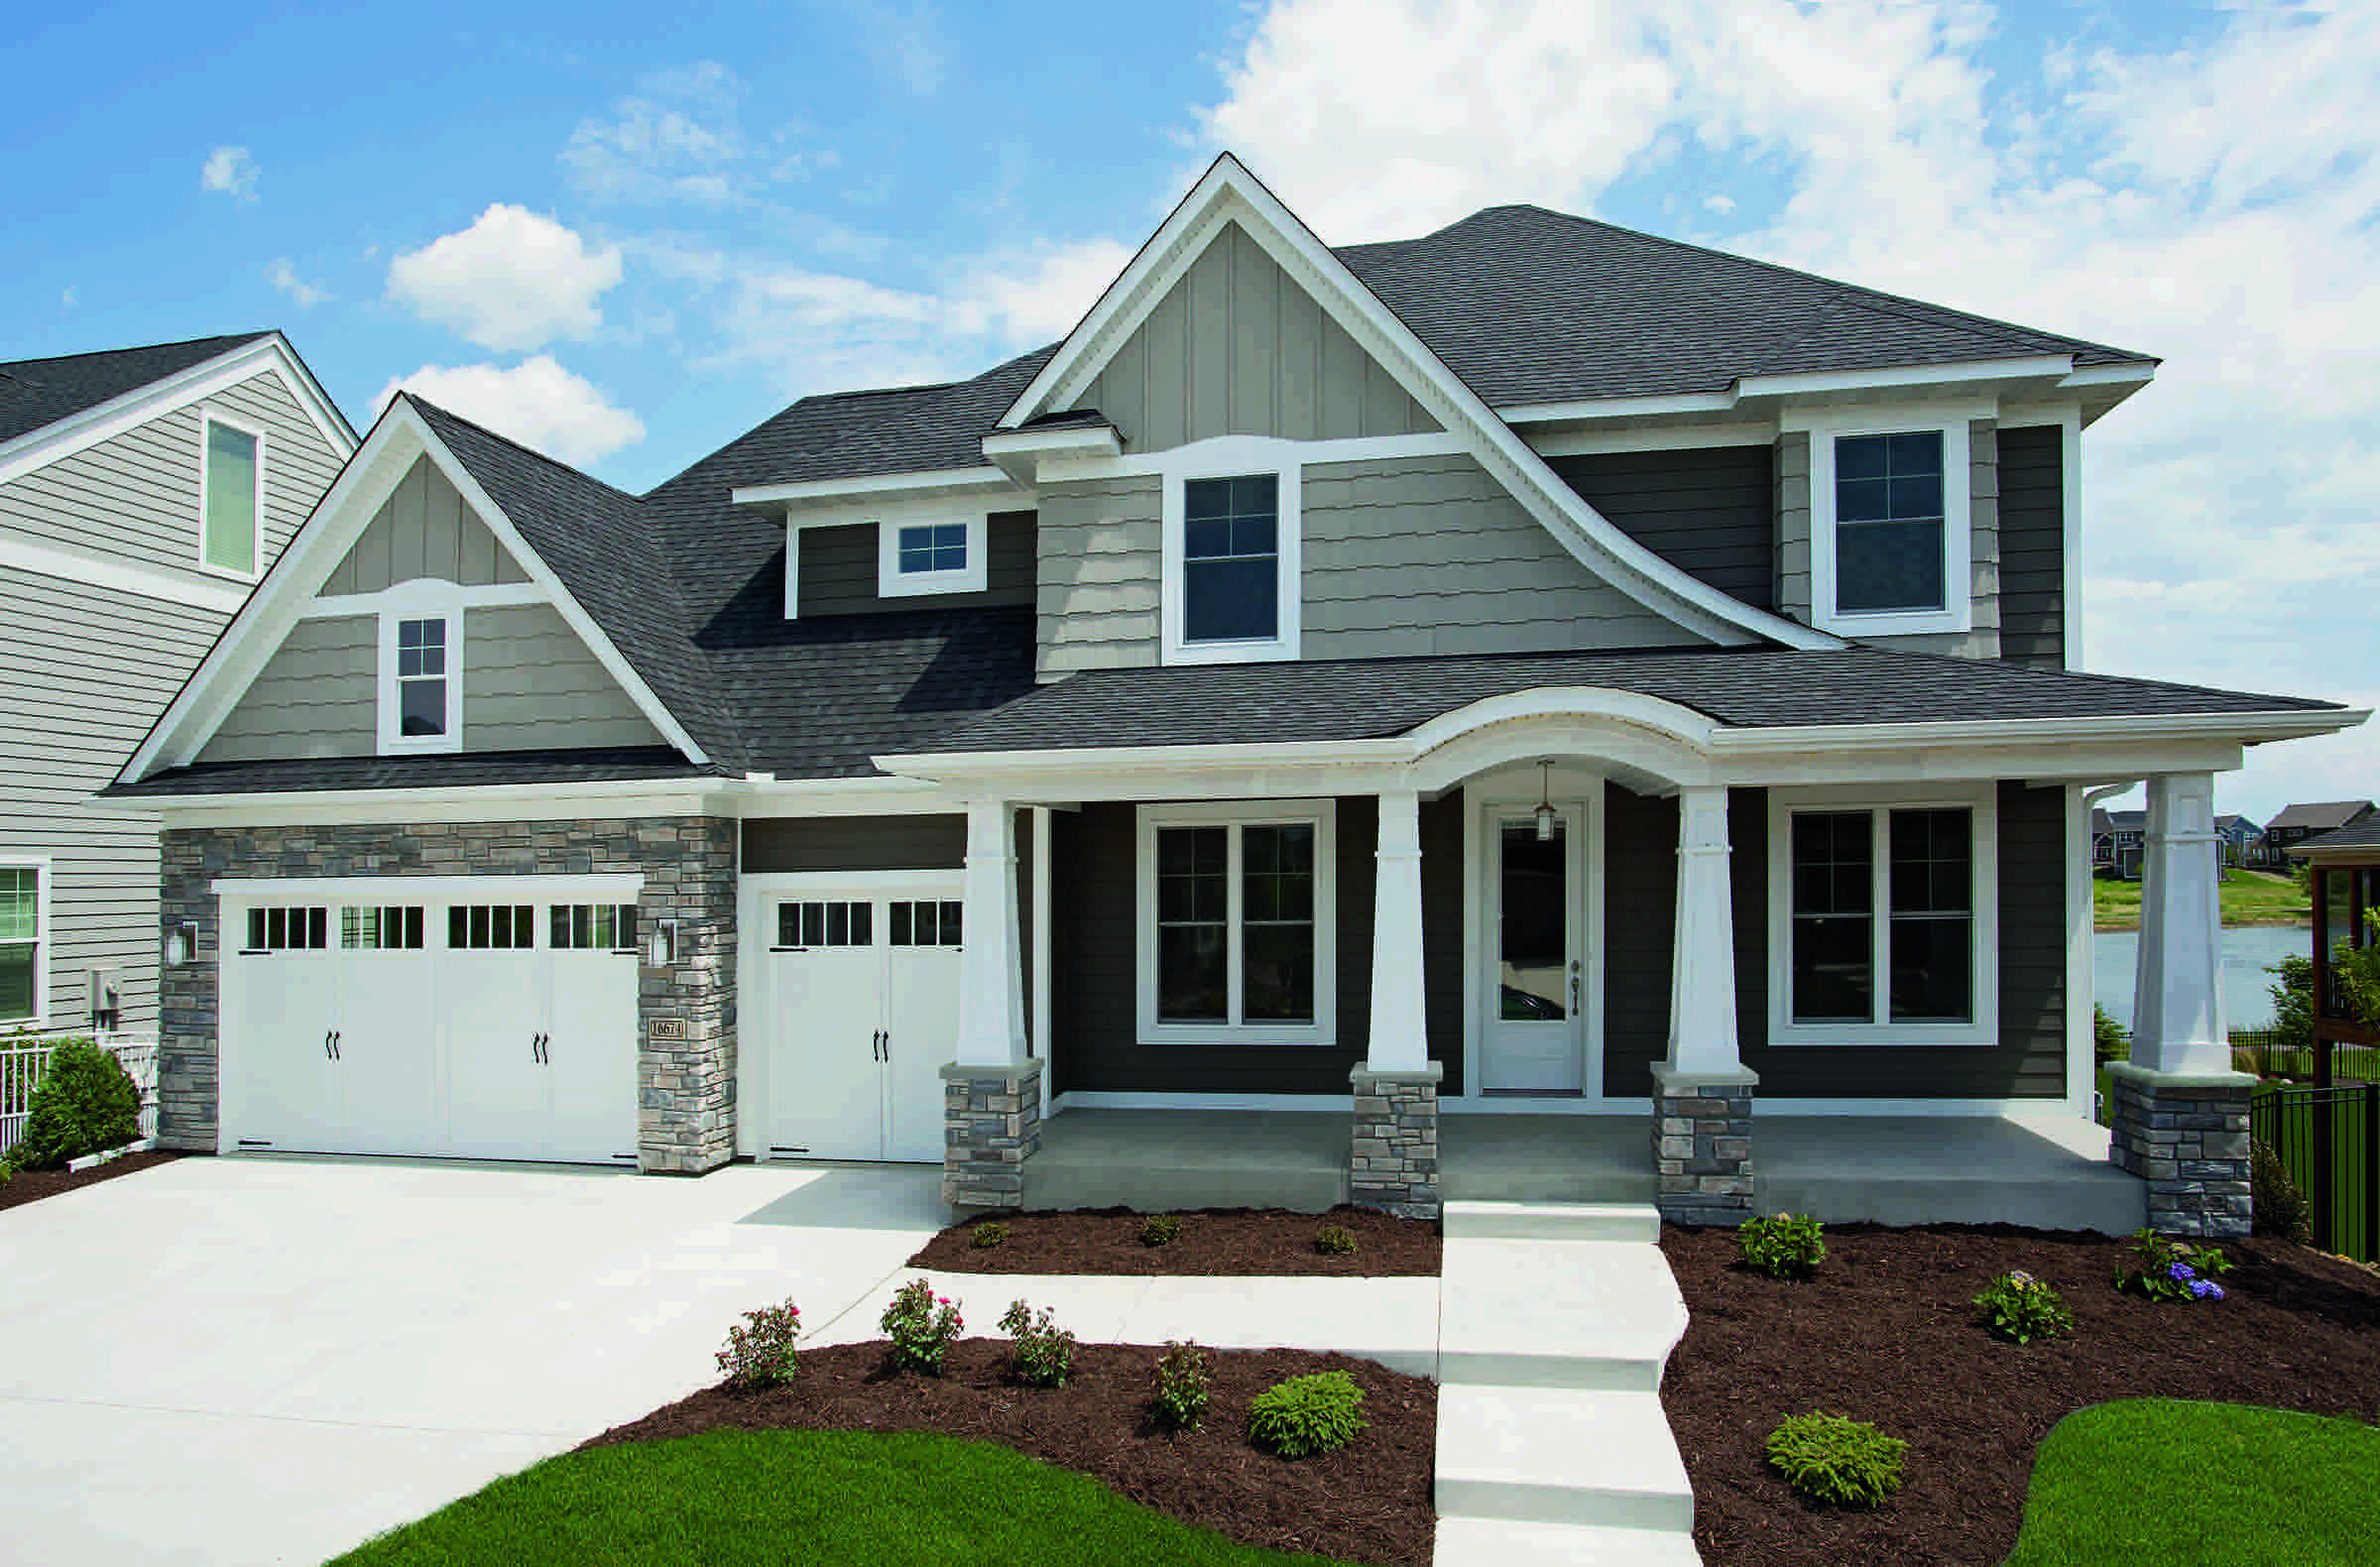 Upgrade your home\'s exterior design with Encompass by Pella® vinyl ...